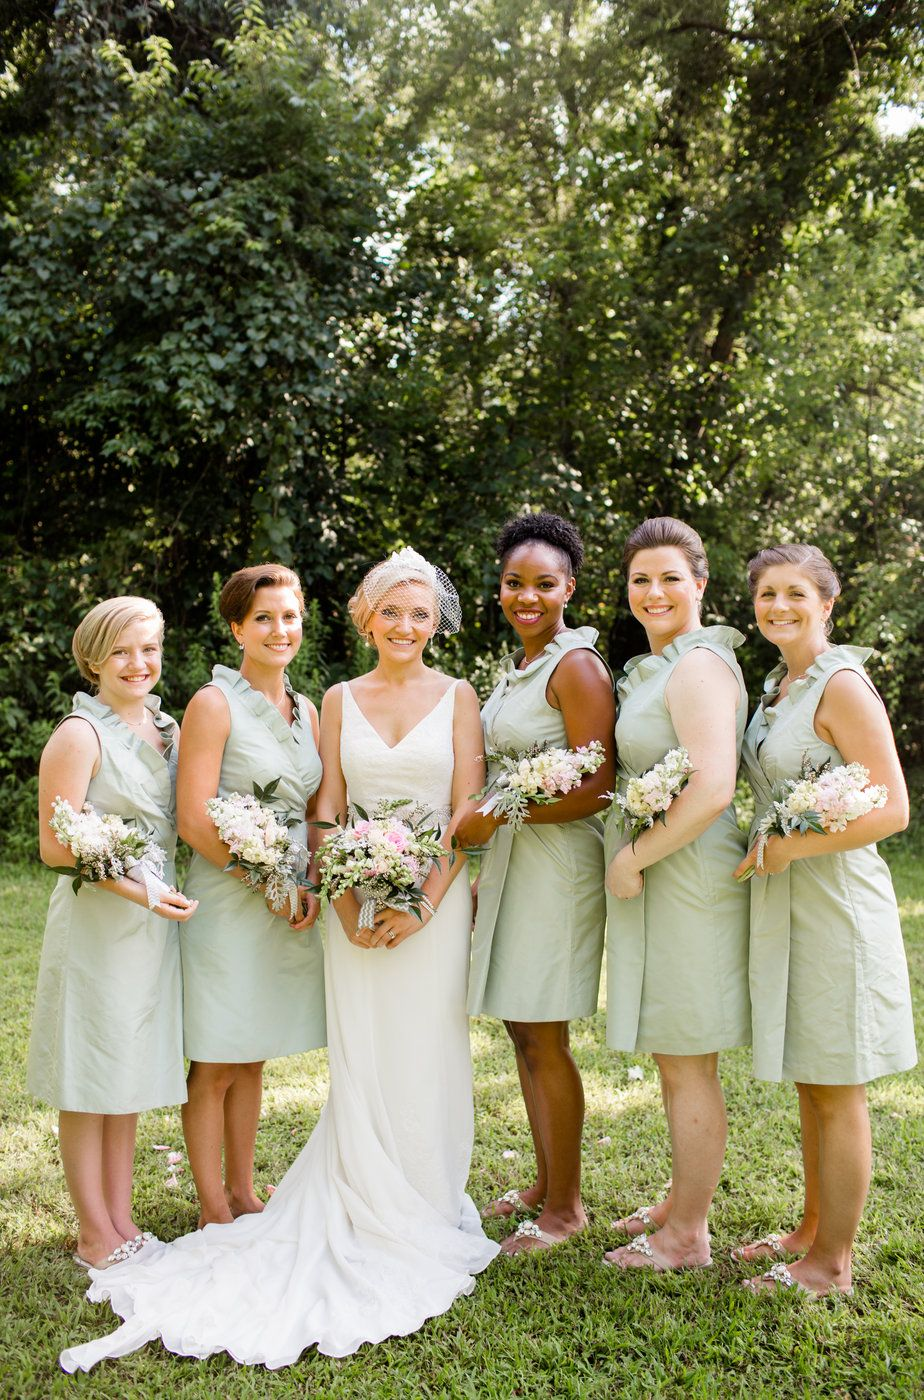 J crew bridesmaid dresses dusty shale wedding day pinterest j crew bridesmaid dresses dusty shale ombrellifo Choice Image